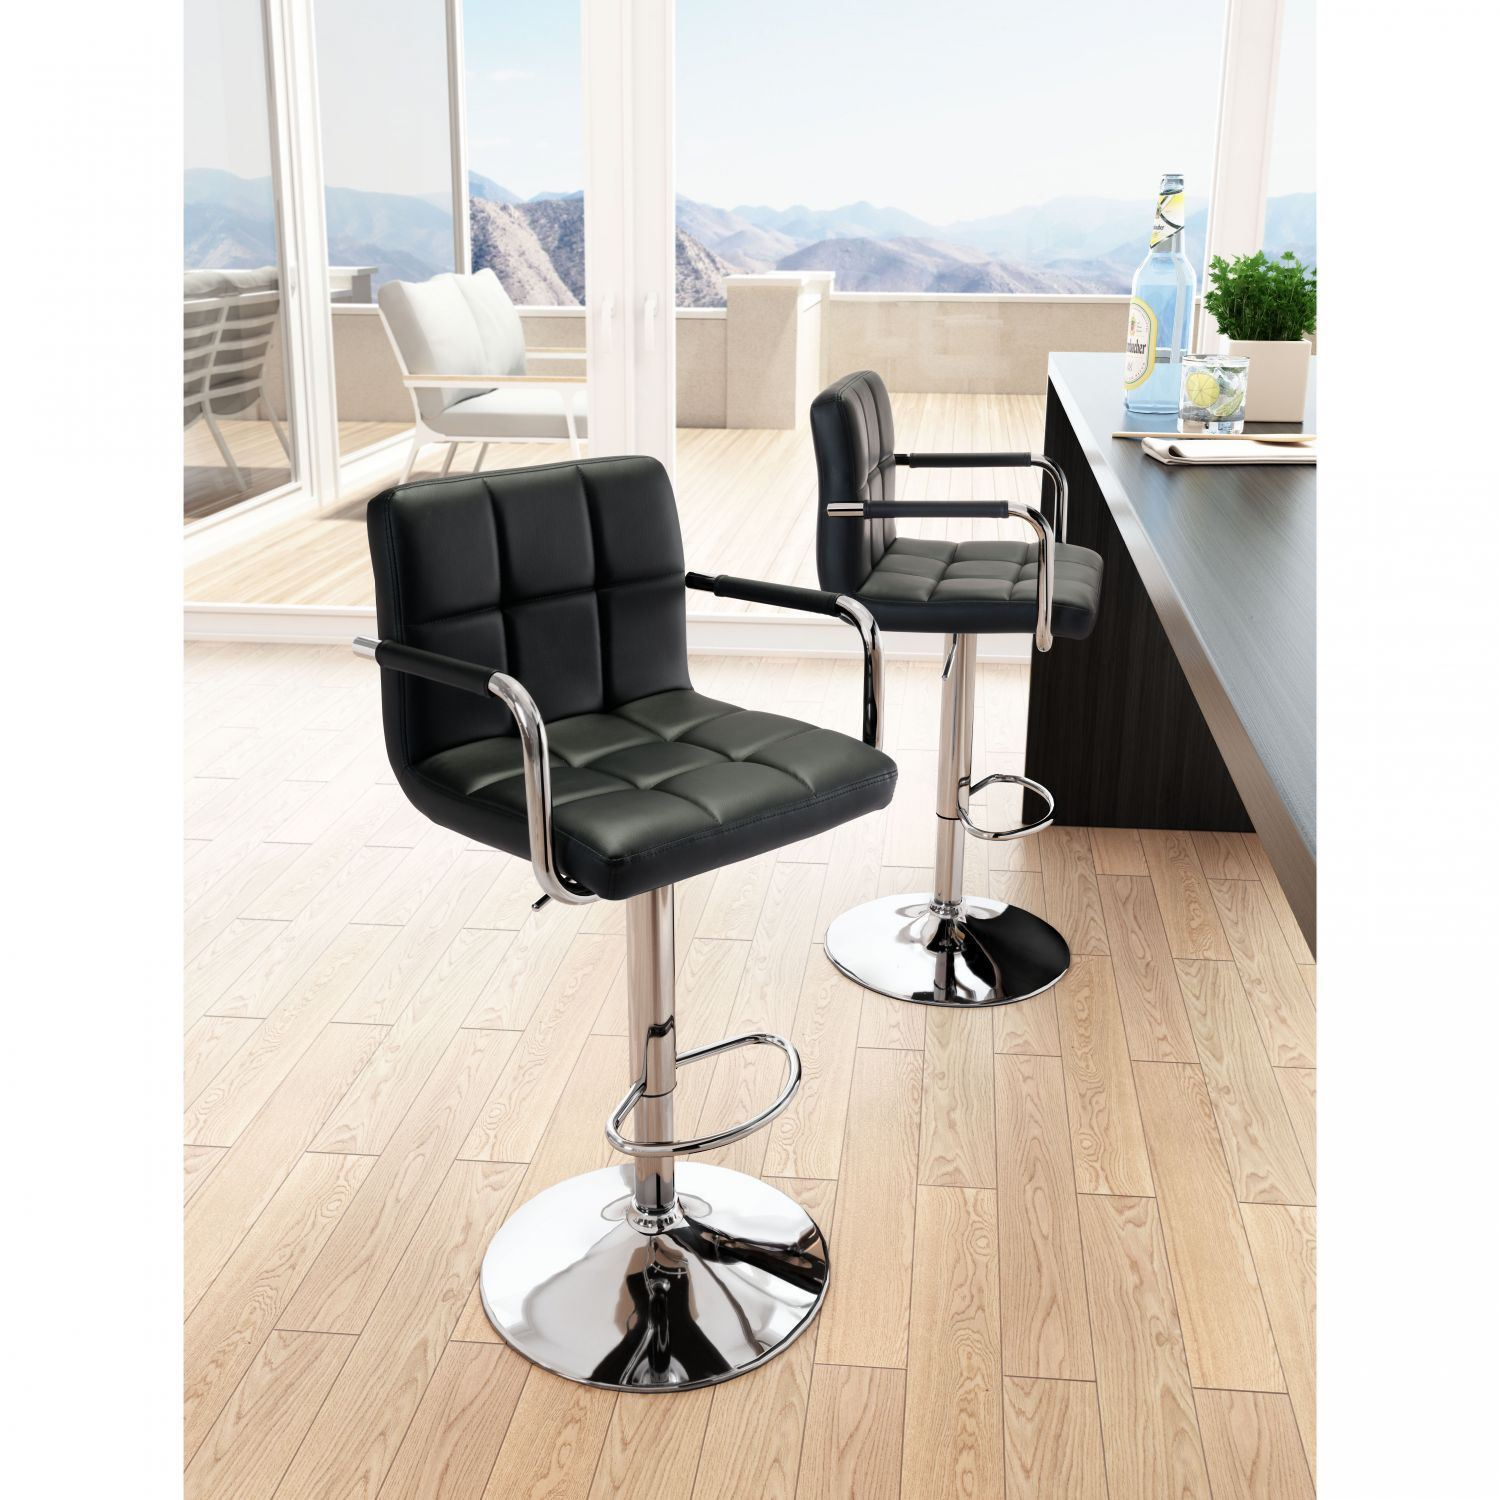 Henna Bar Chair Black 100612 Zuo Modern Contemporary Afw